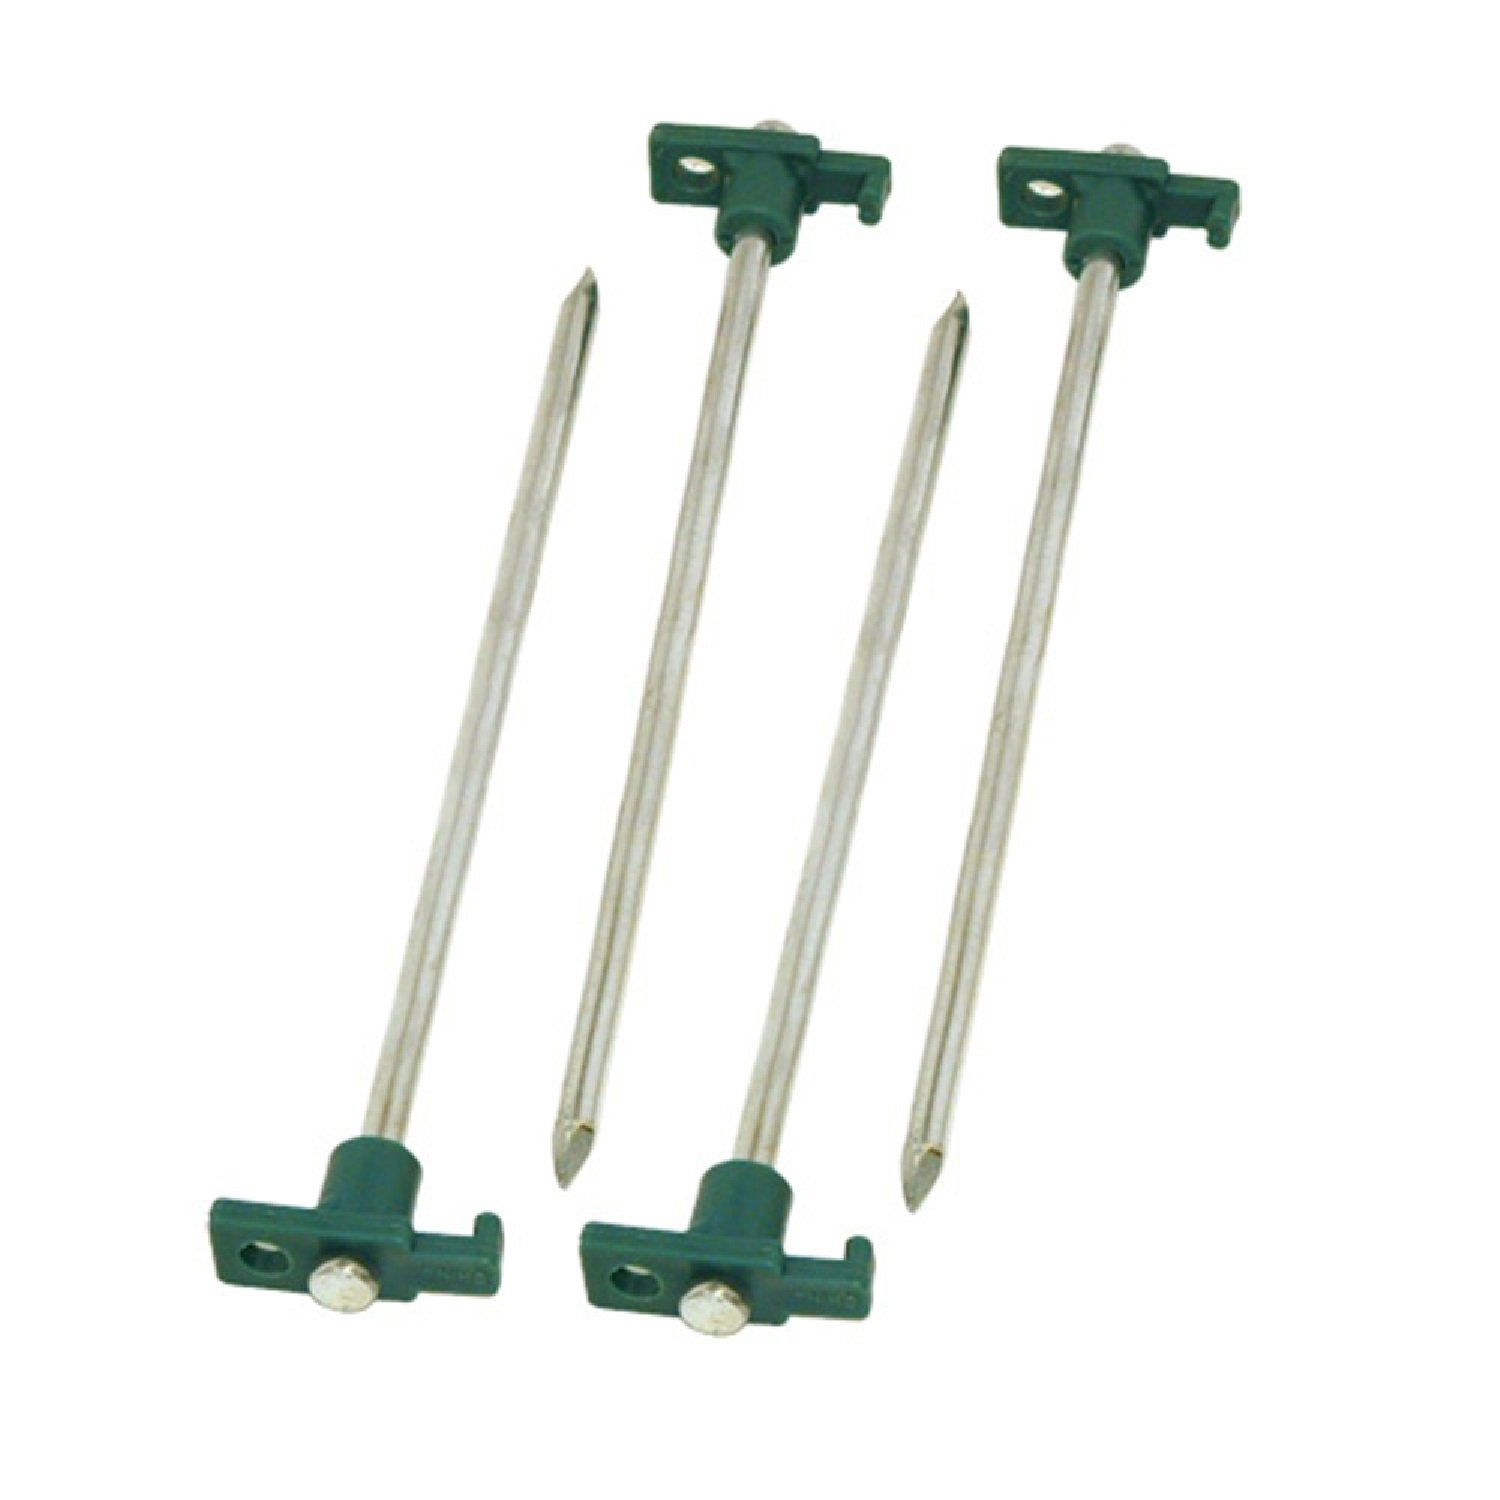 Tent Pegs   x 10 Coleman 12 Metal Tent Stakes